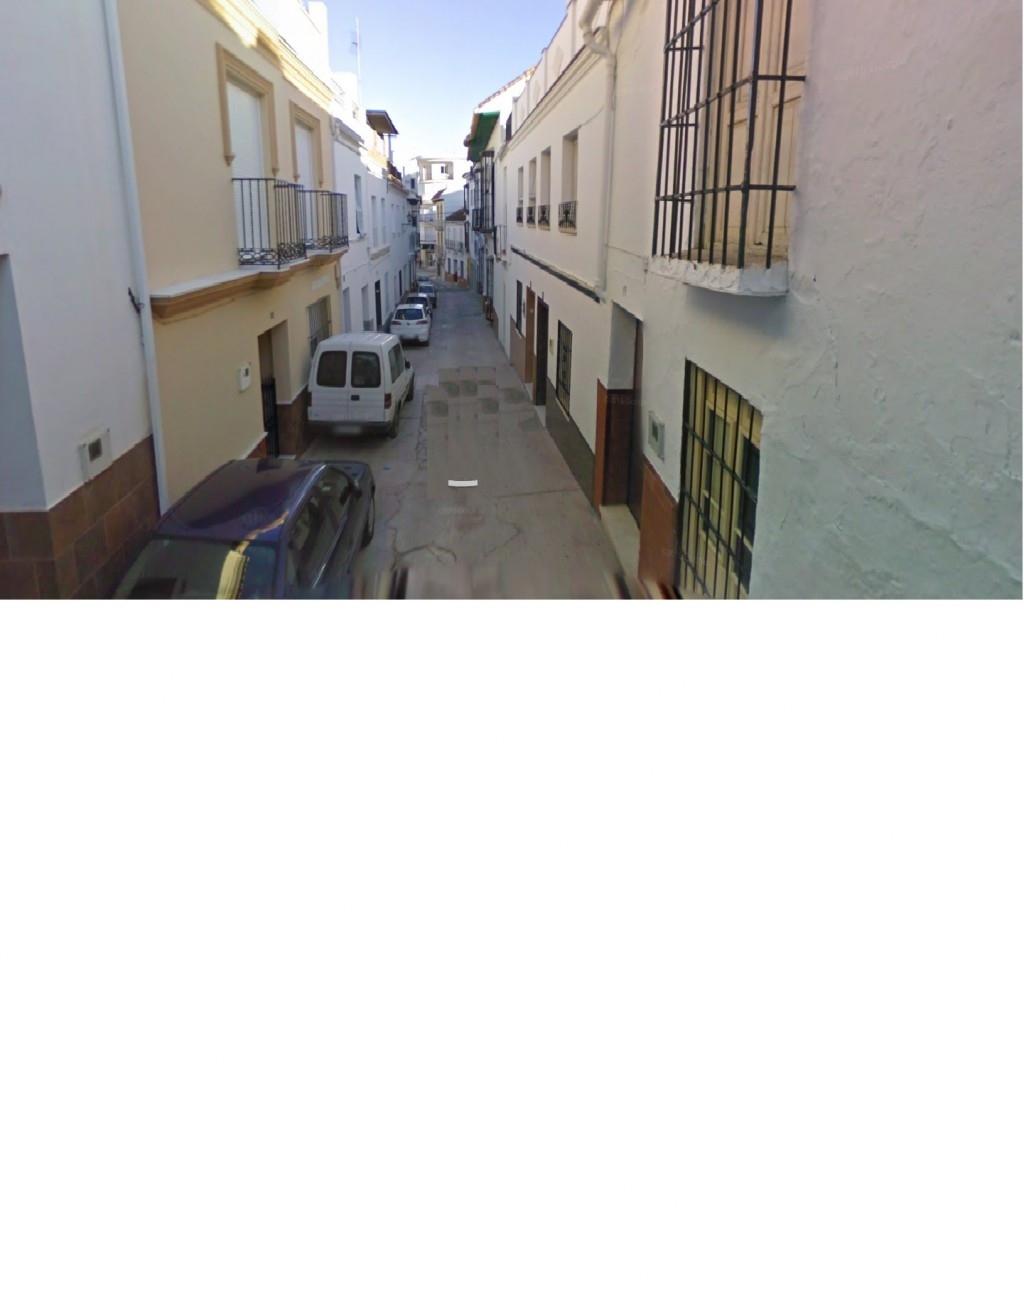 Great townhouse located in Alhaurin el Grande, the property is spacious, with several bedrooms, bath, Spain